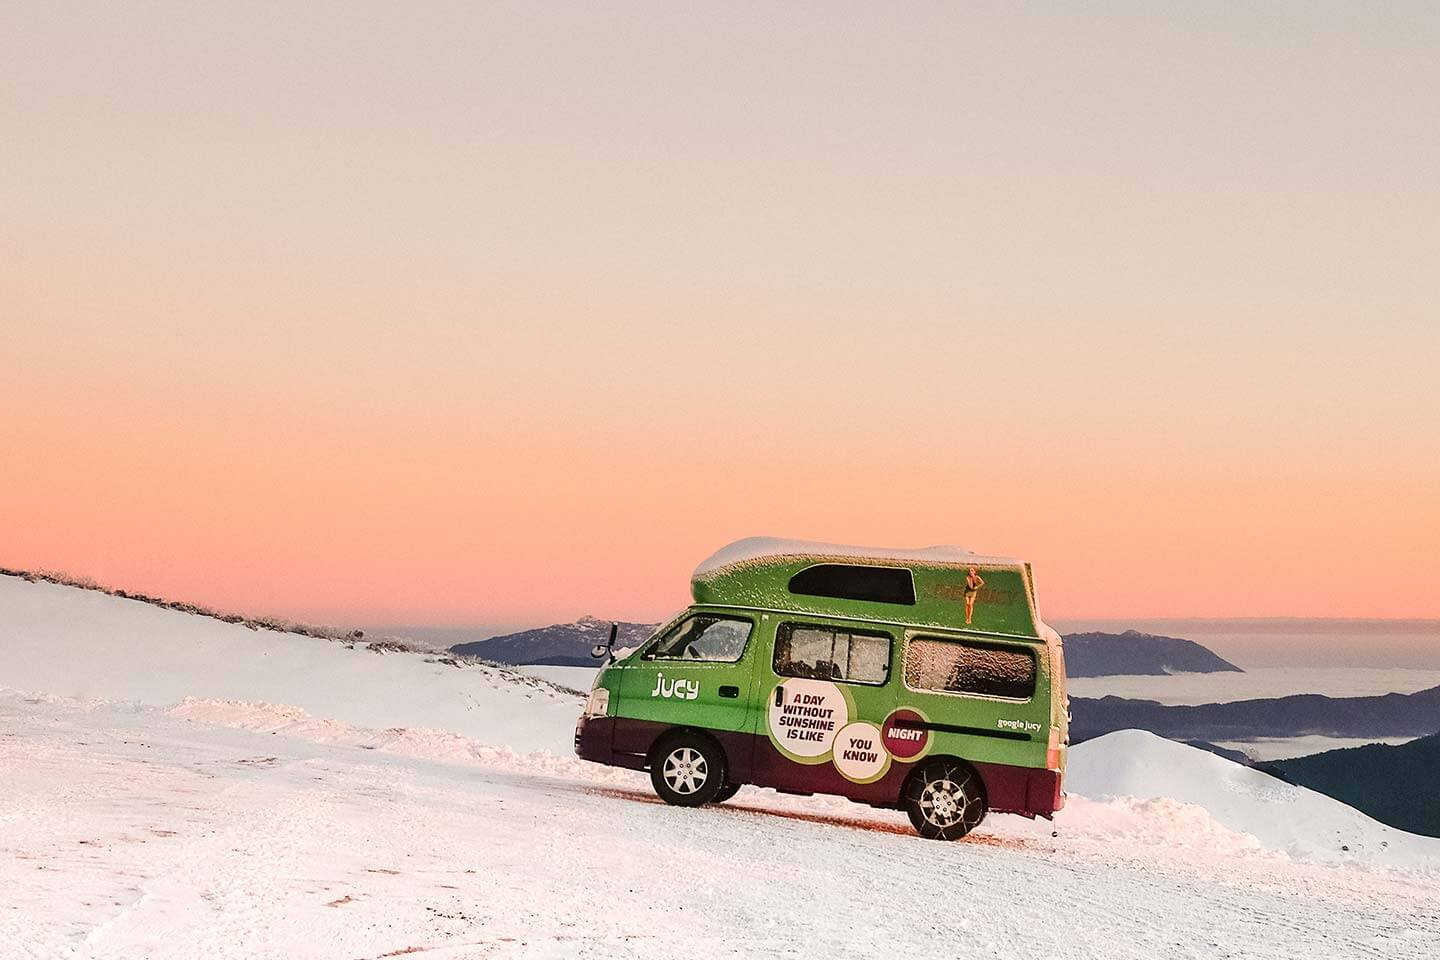 A JUCY van rental in the snow - premium choice for budget campervan hire in New Zealand and Australia